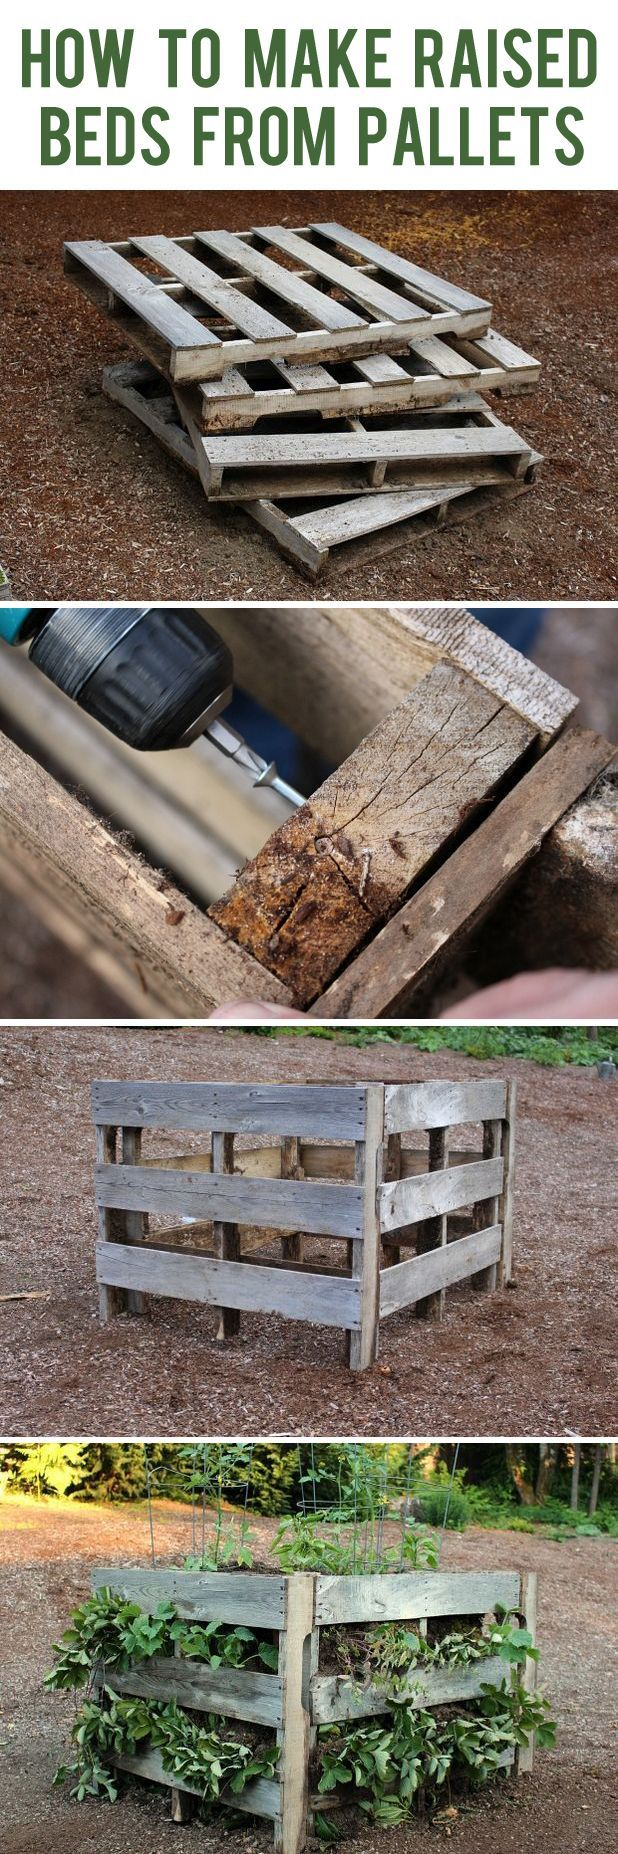 17 Best ideas about Cheap Raised Garden Beds on Pinterest Diy